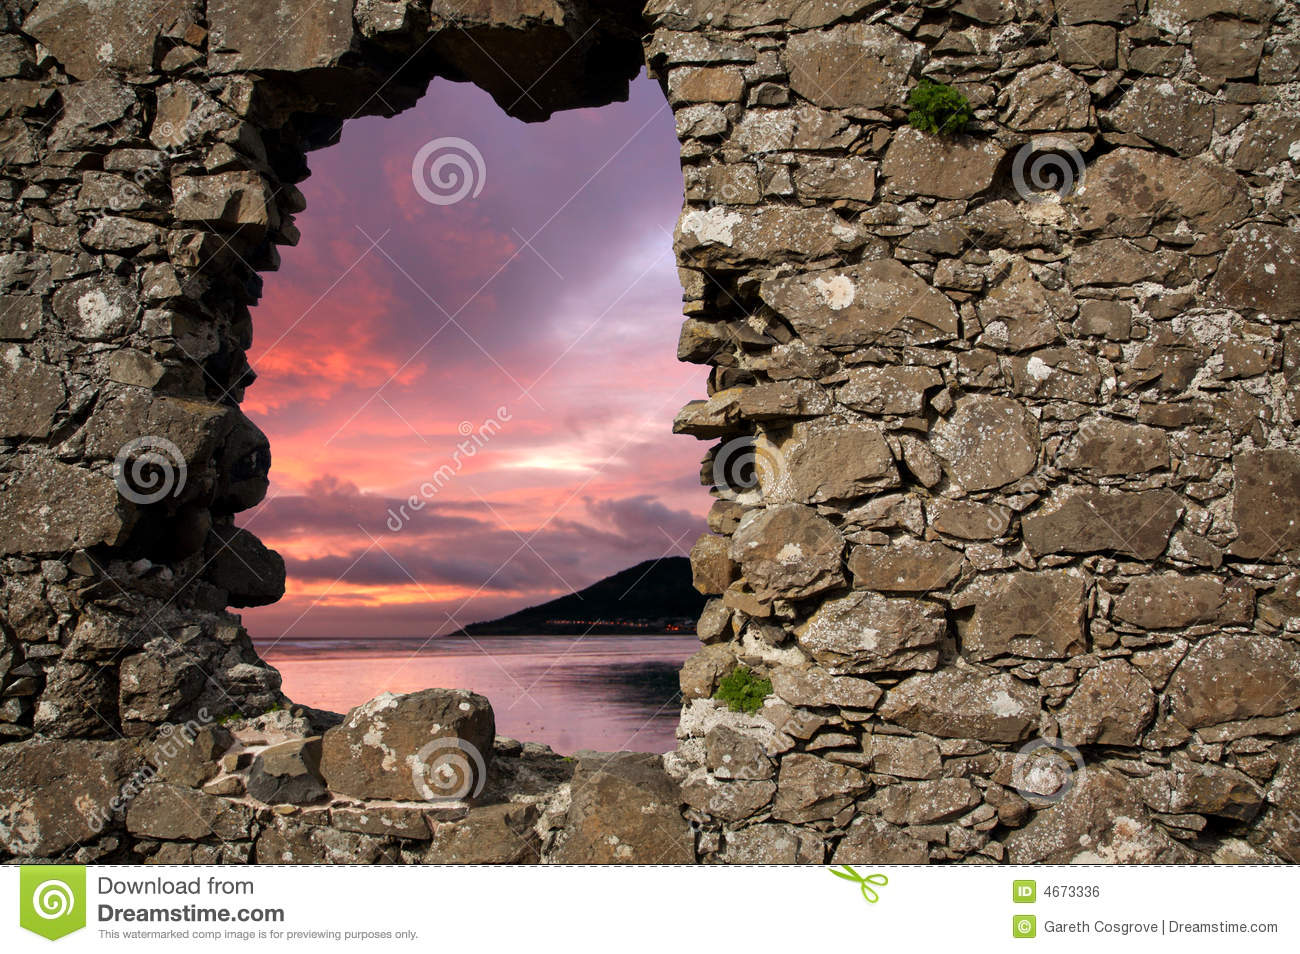 Sunset through hole in a wall